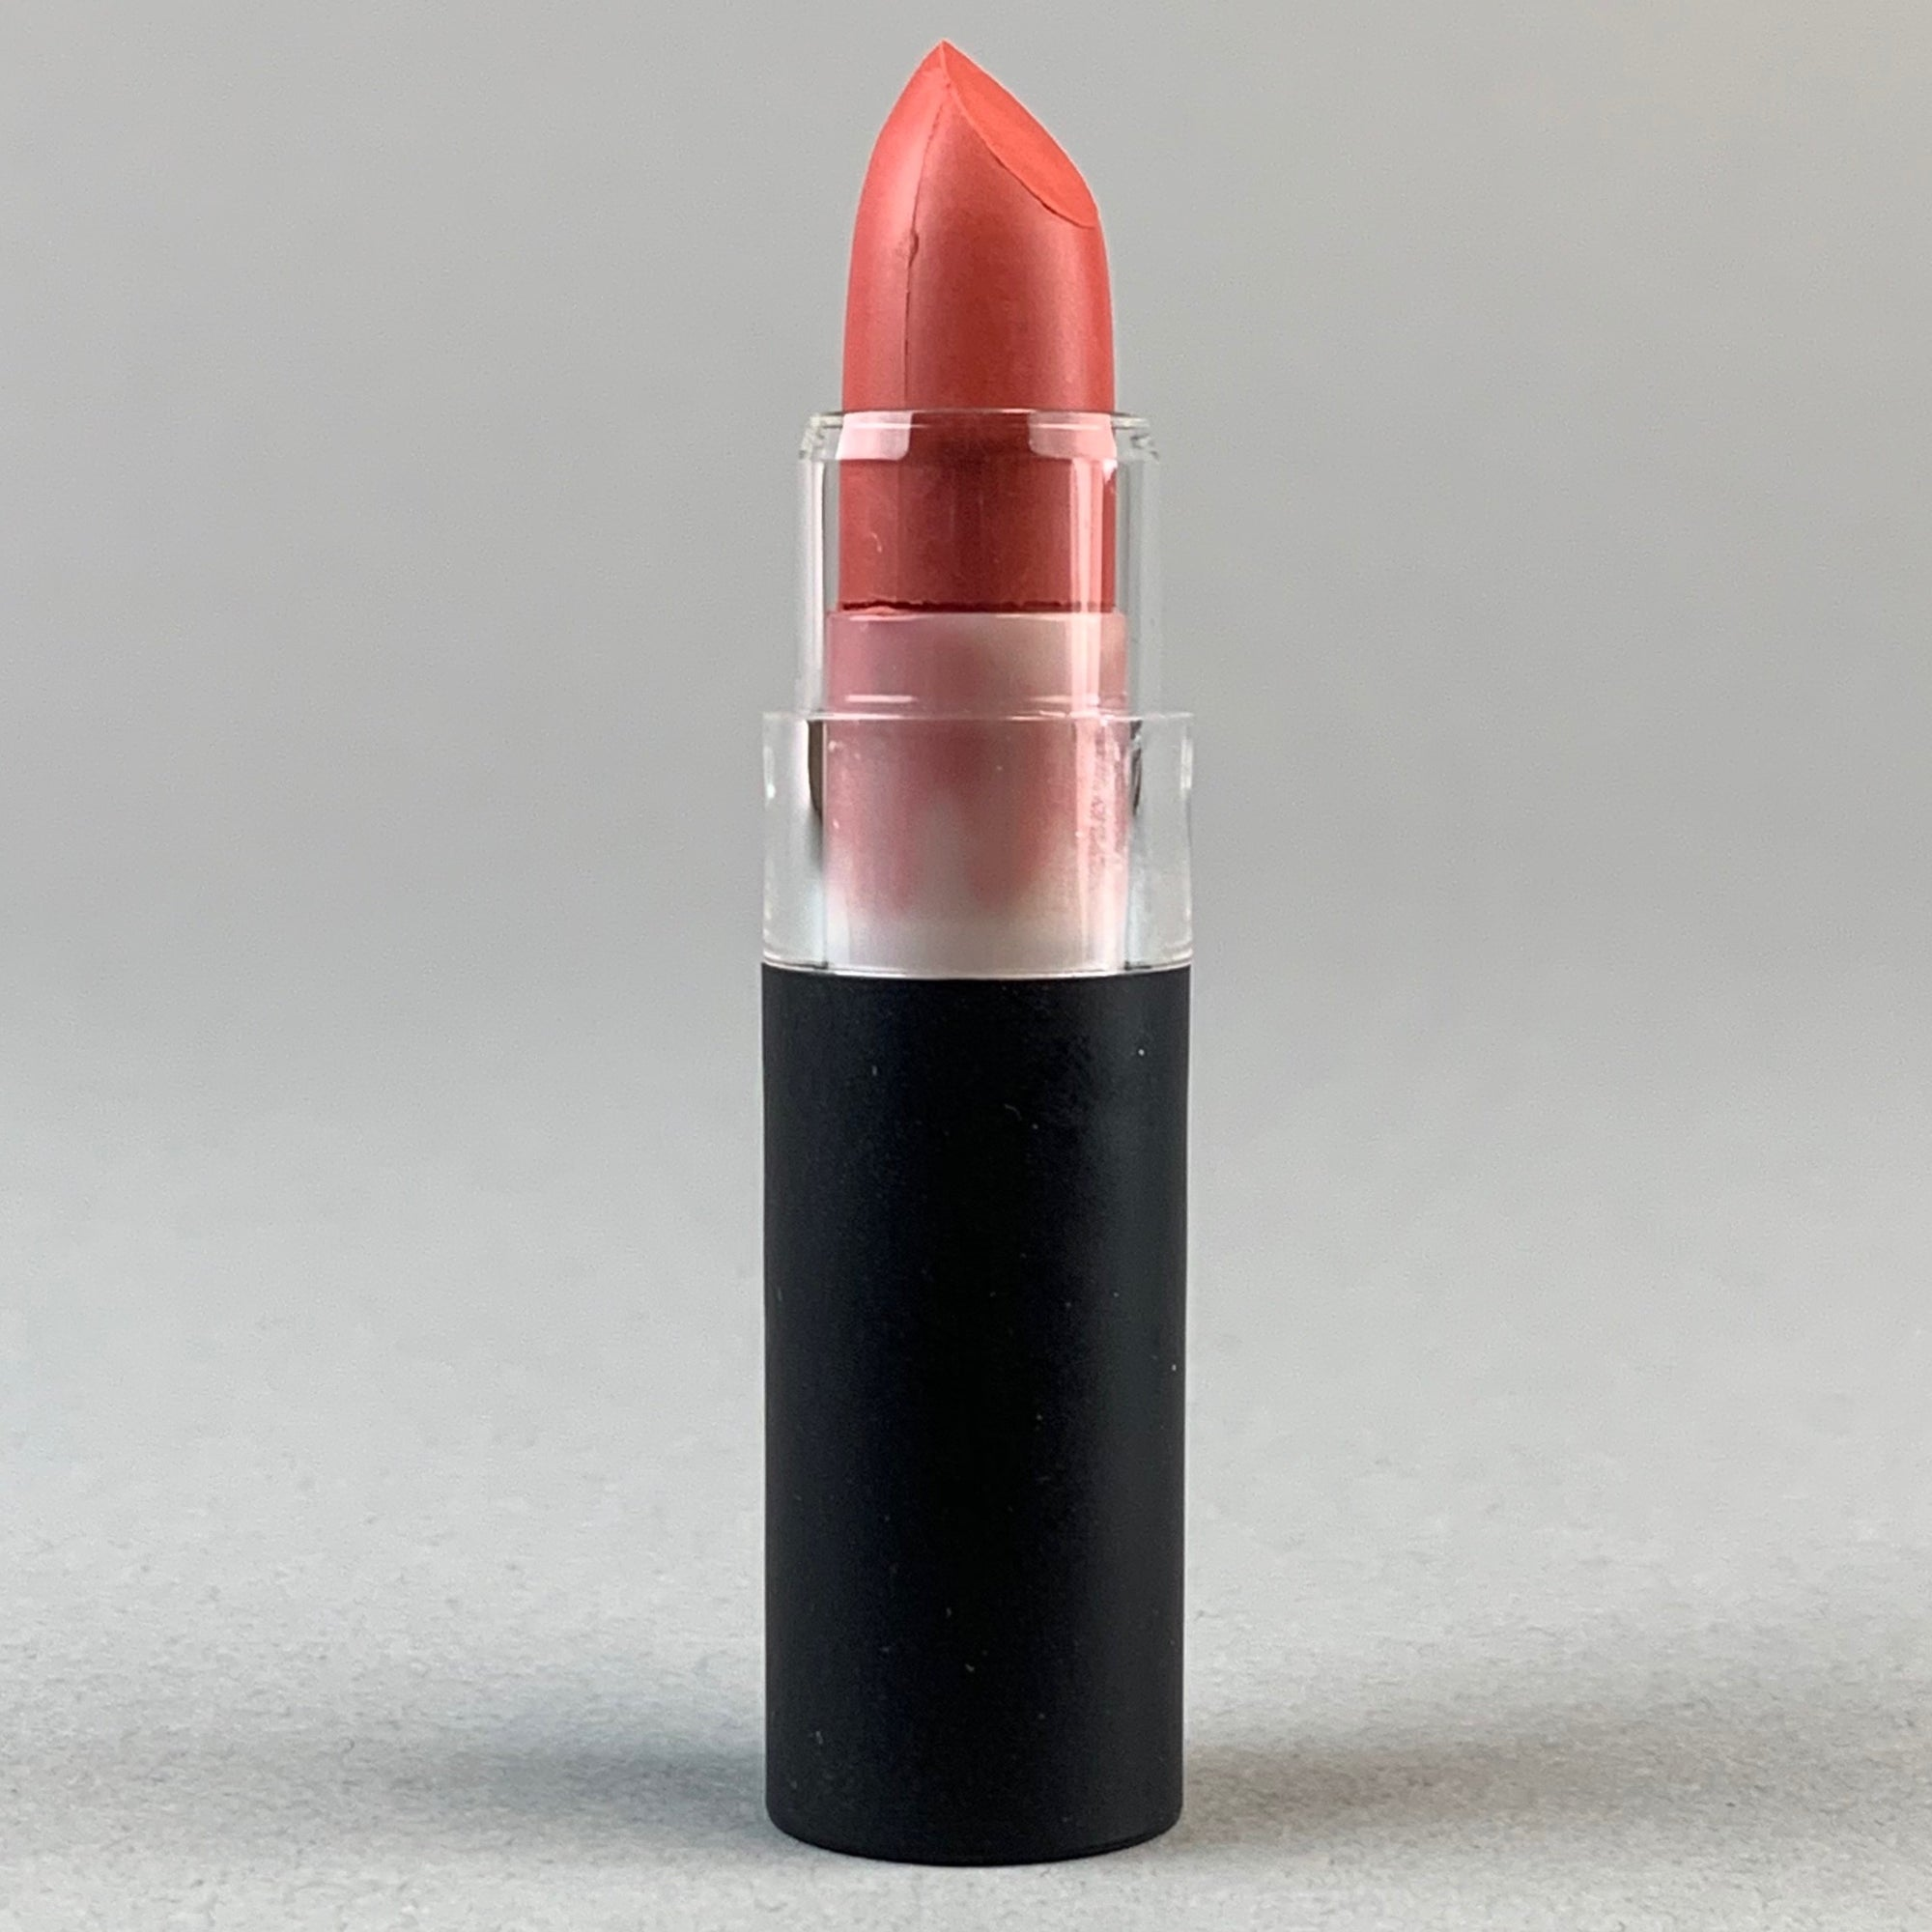 blushing bride lipstick